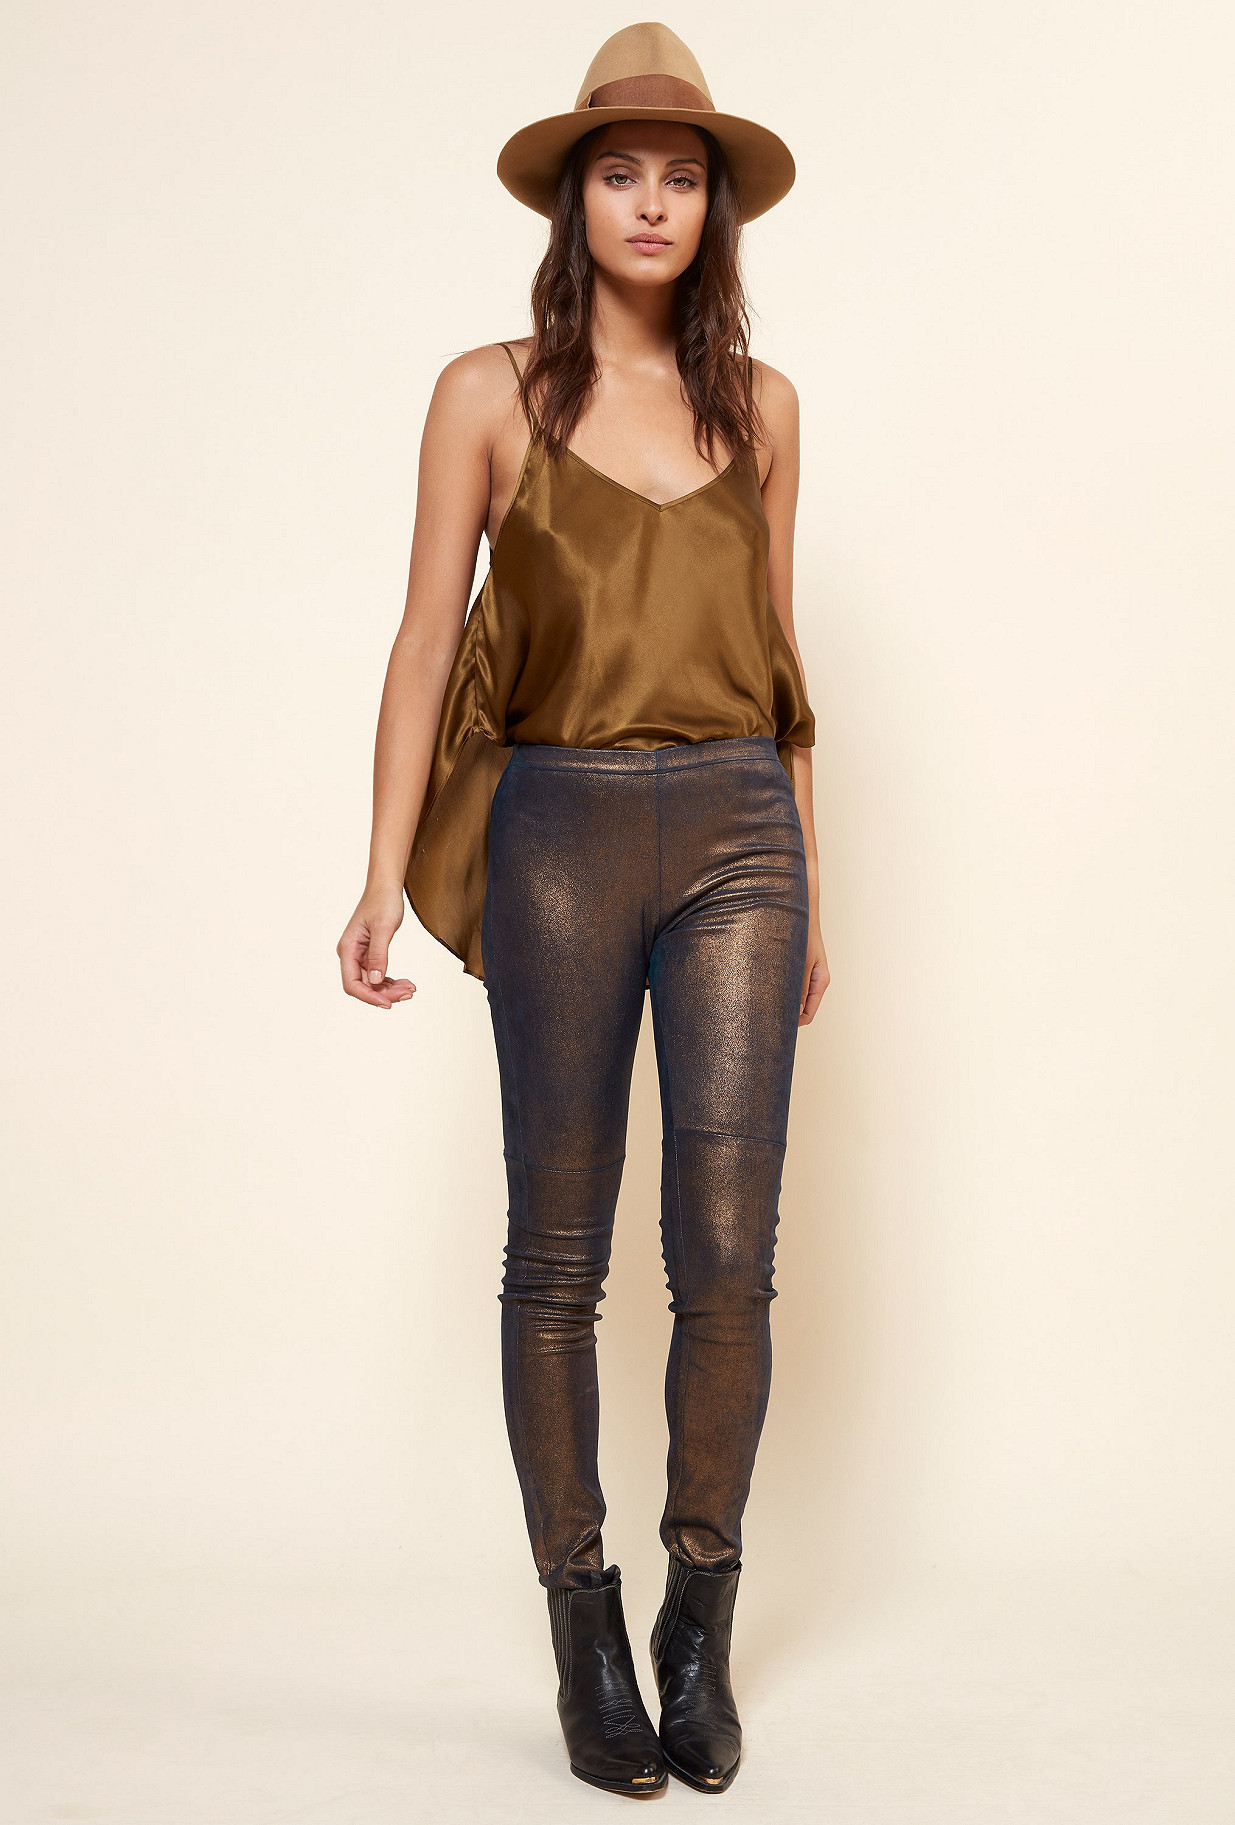 boutique de vetement PANTALON createur boheme  Esther